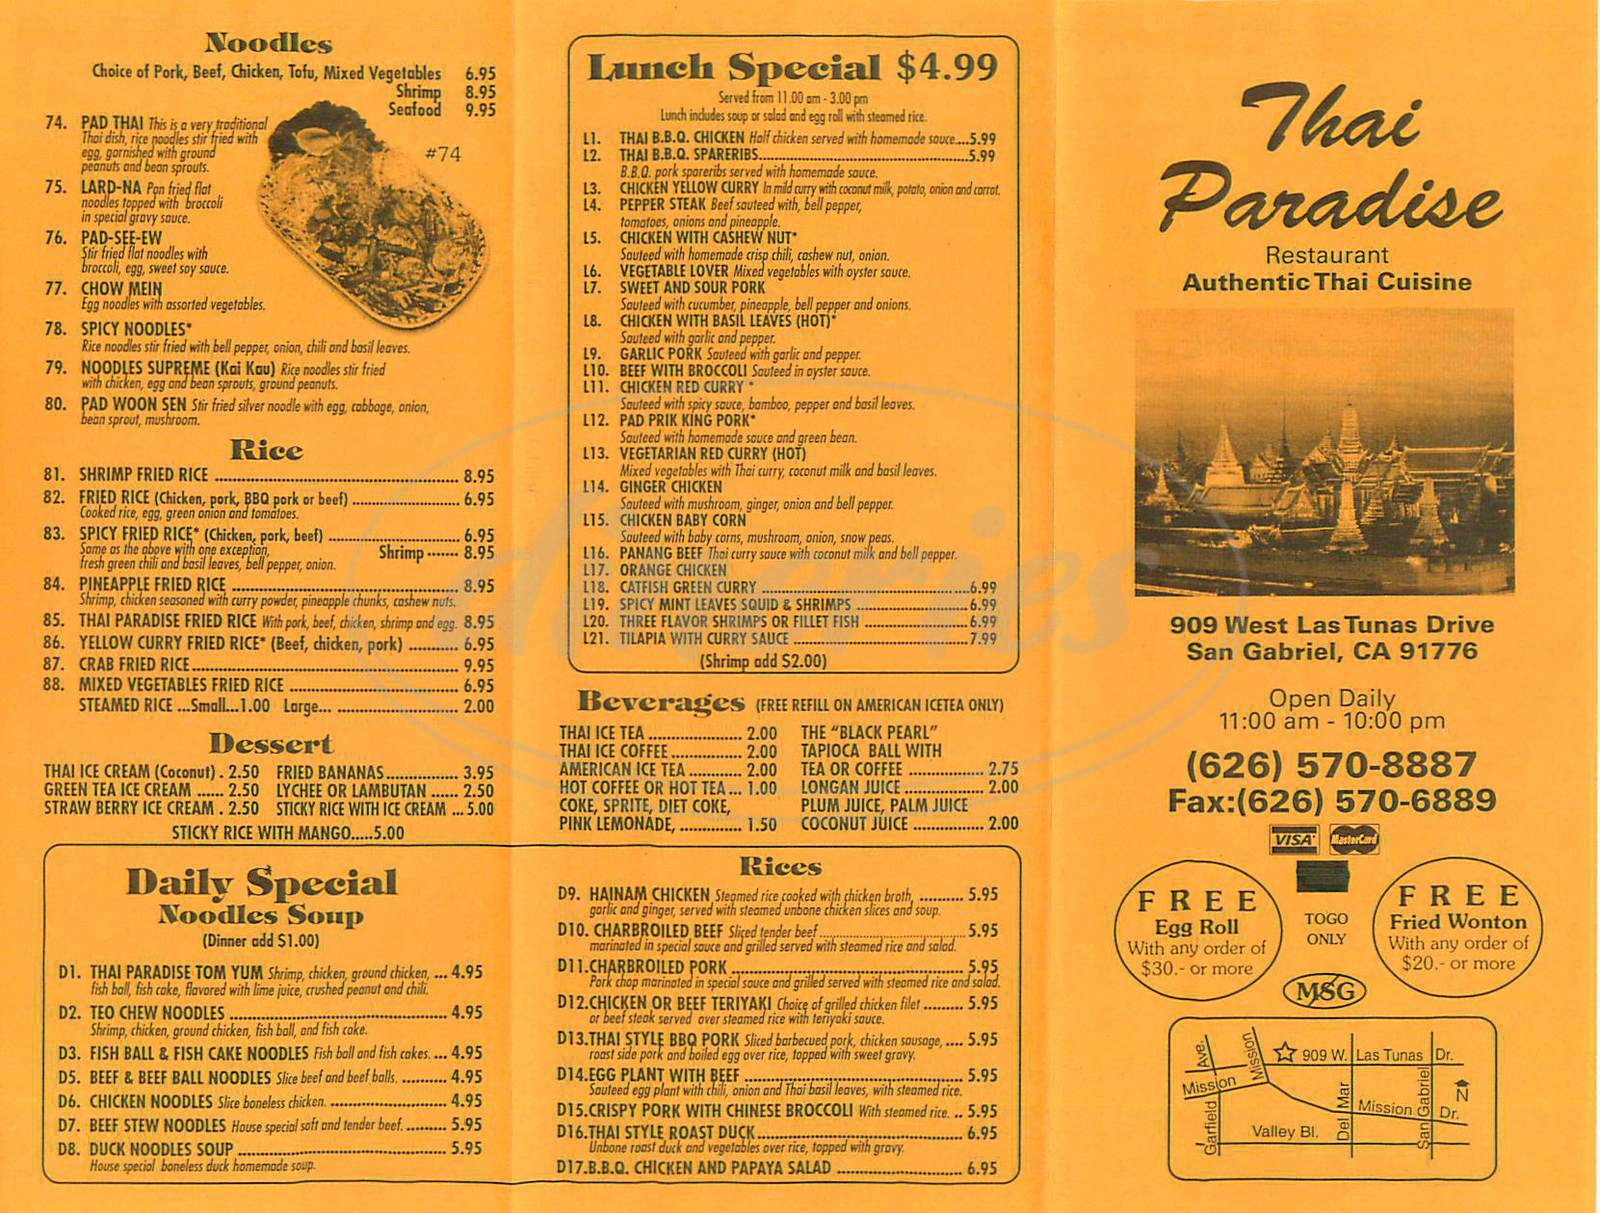 menu for Thai Paradise